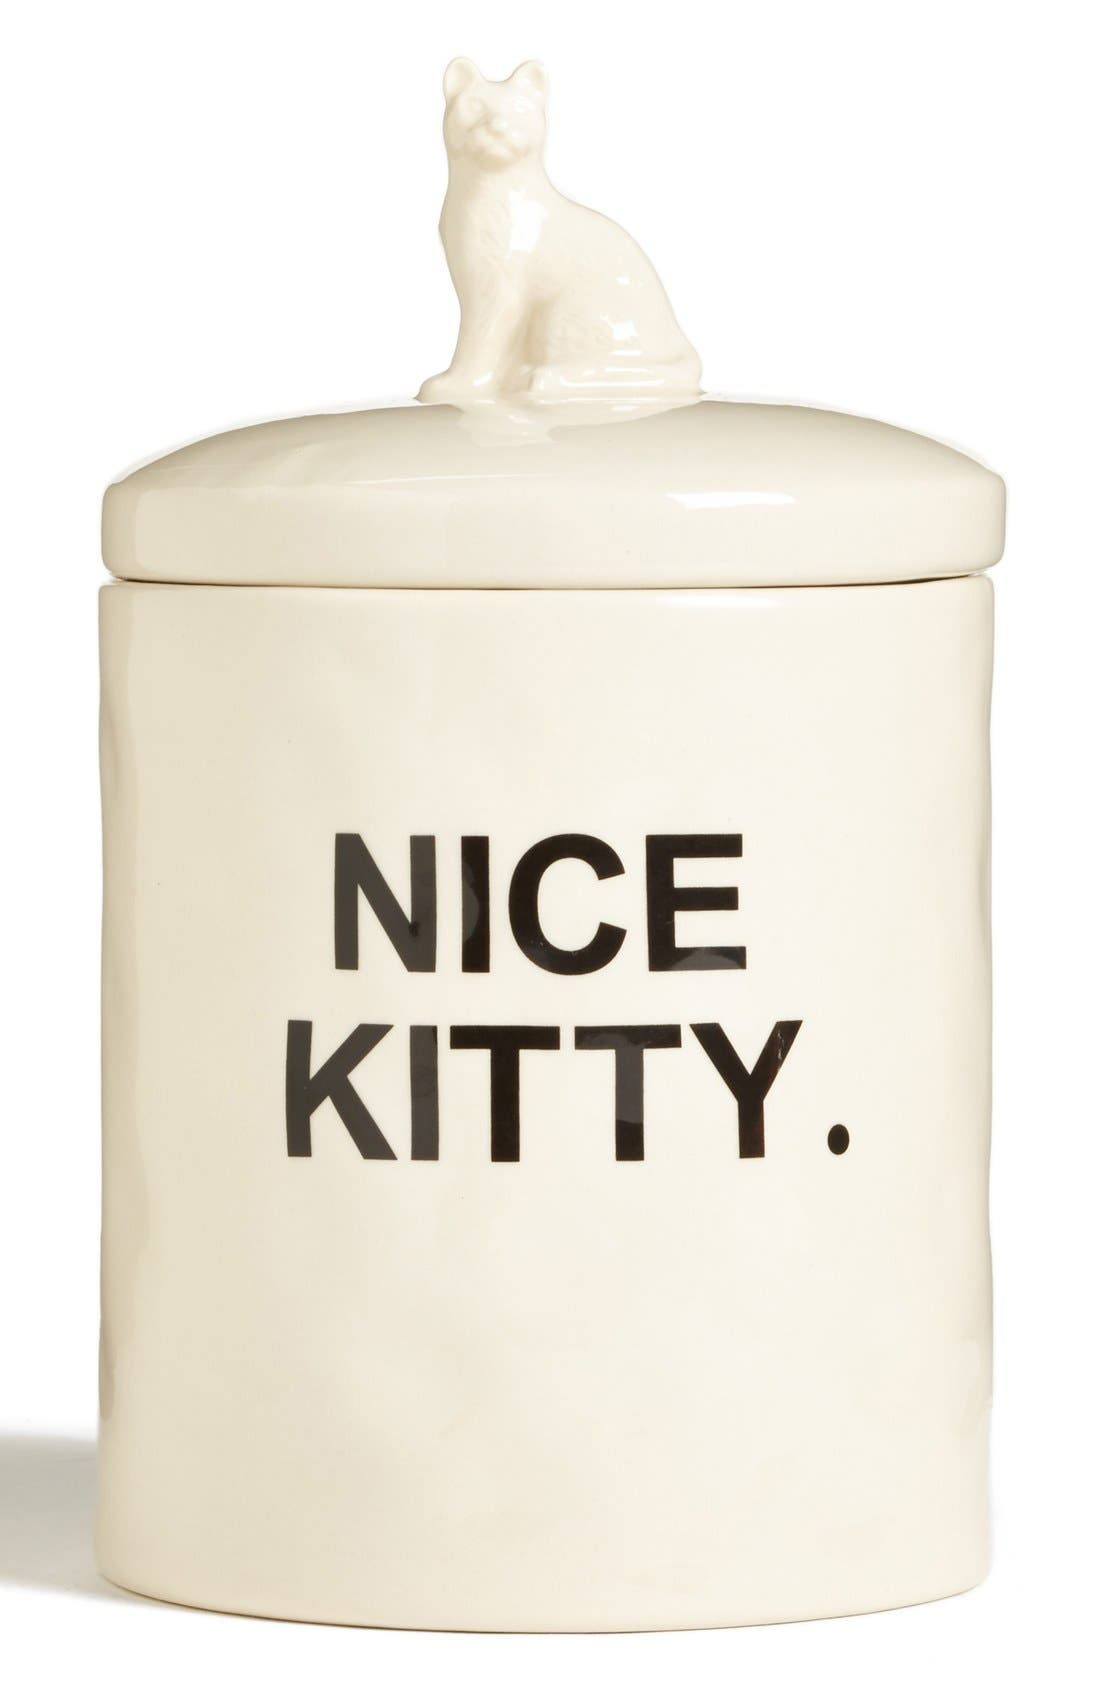 'Fred' Cat Treat Jar,                             Main thumbnail 1, color,                             White